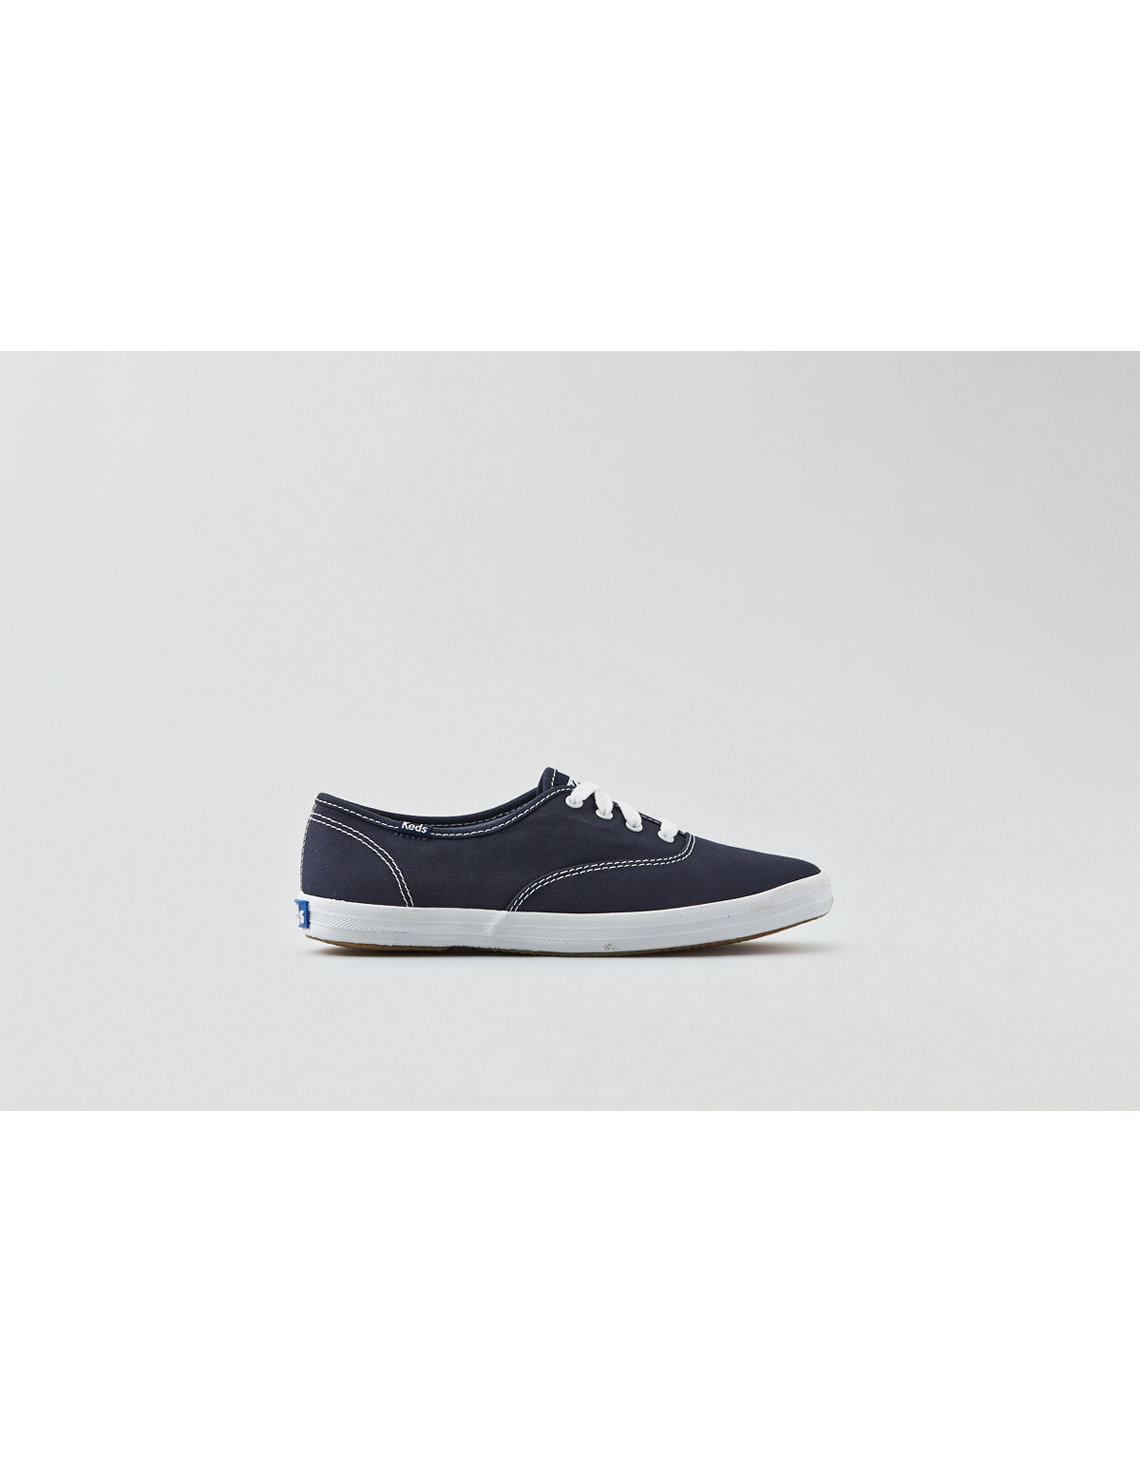 a346bf9c270 Keds Champion Originals Sneaker. Placeholder image. Product Image